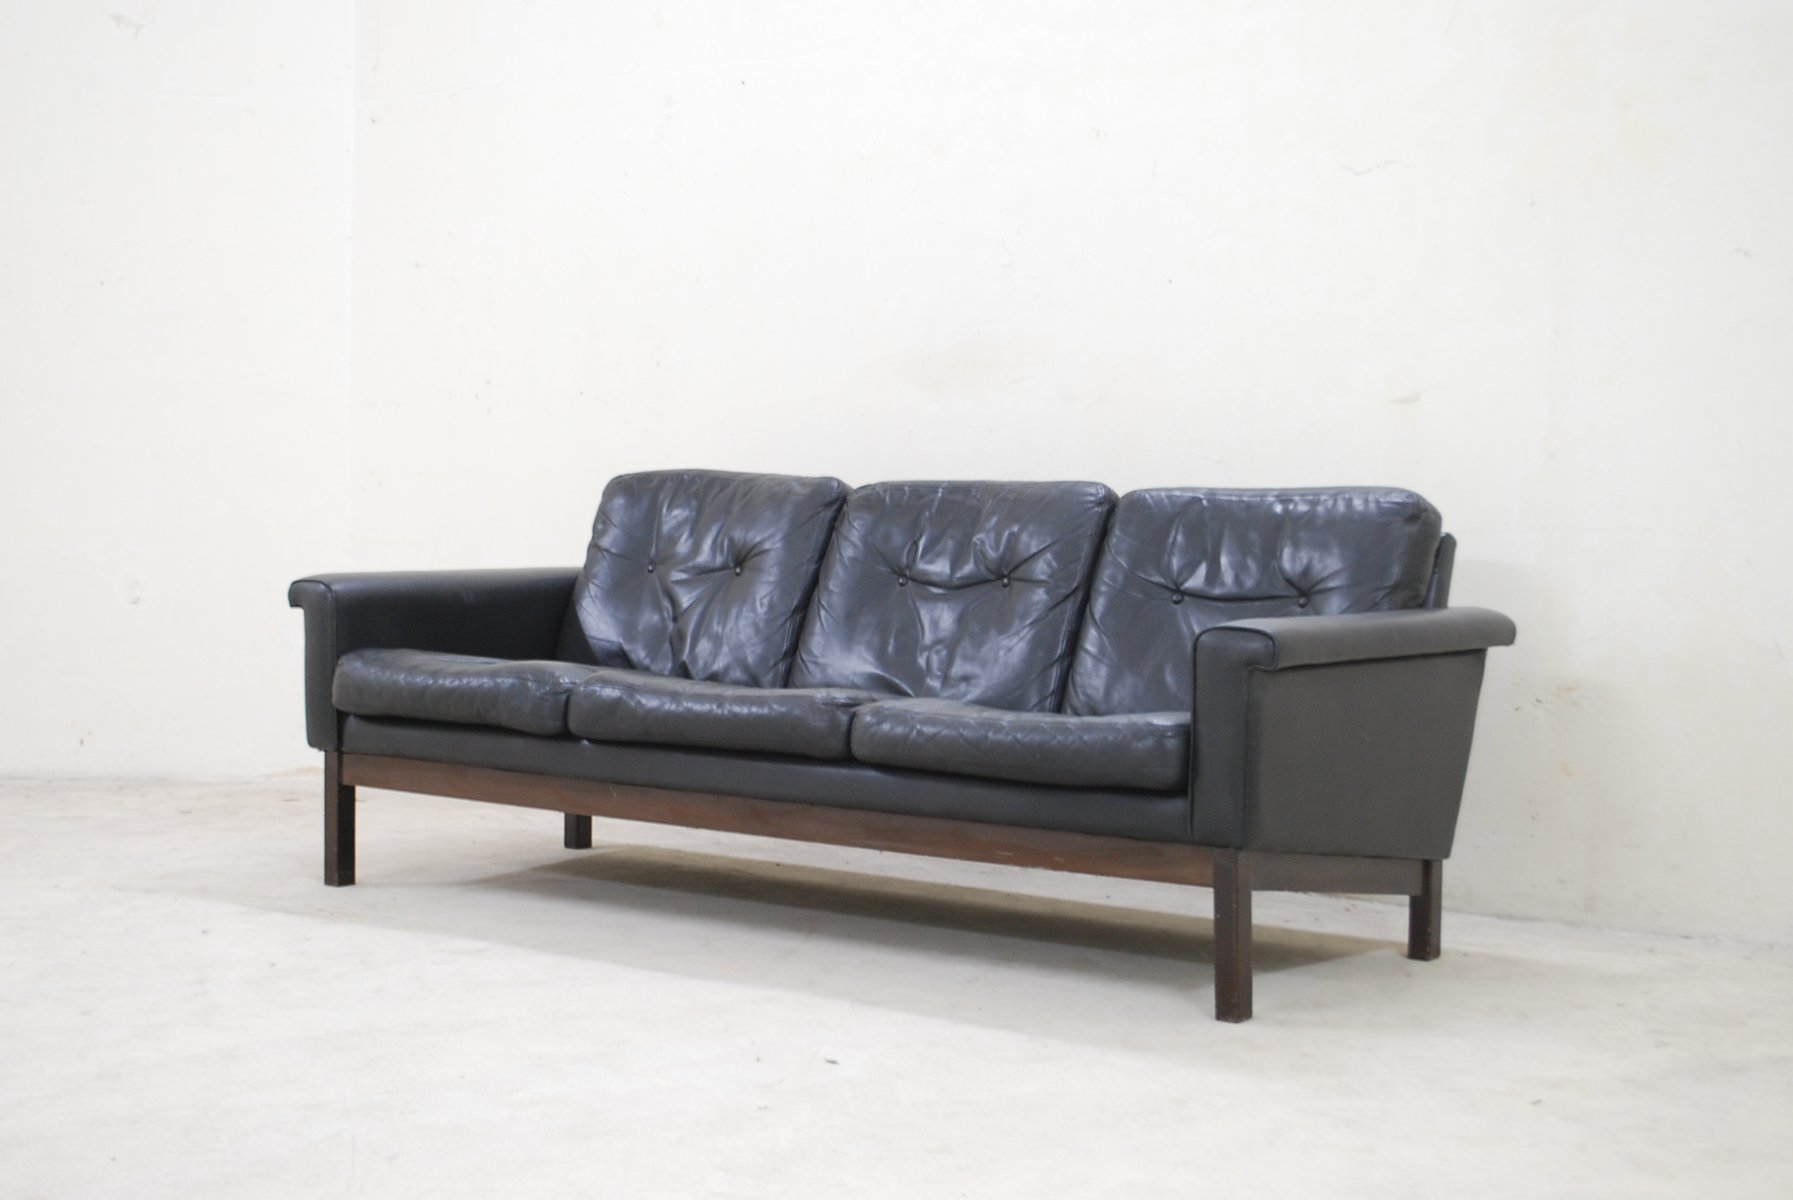 schwarzes vintage leder sofa von asko bei pamono kaufen. Black Bedroom Furniture Sets. Home Design Ideas